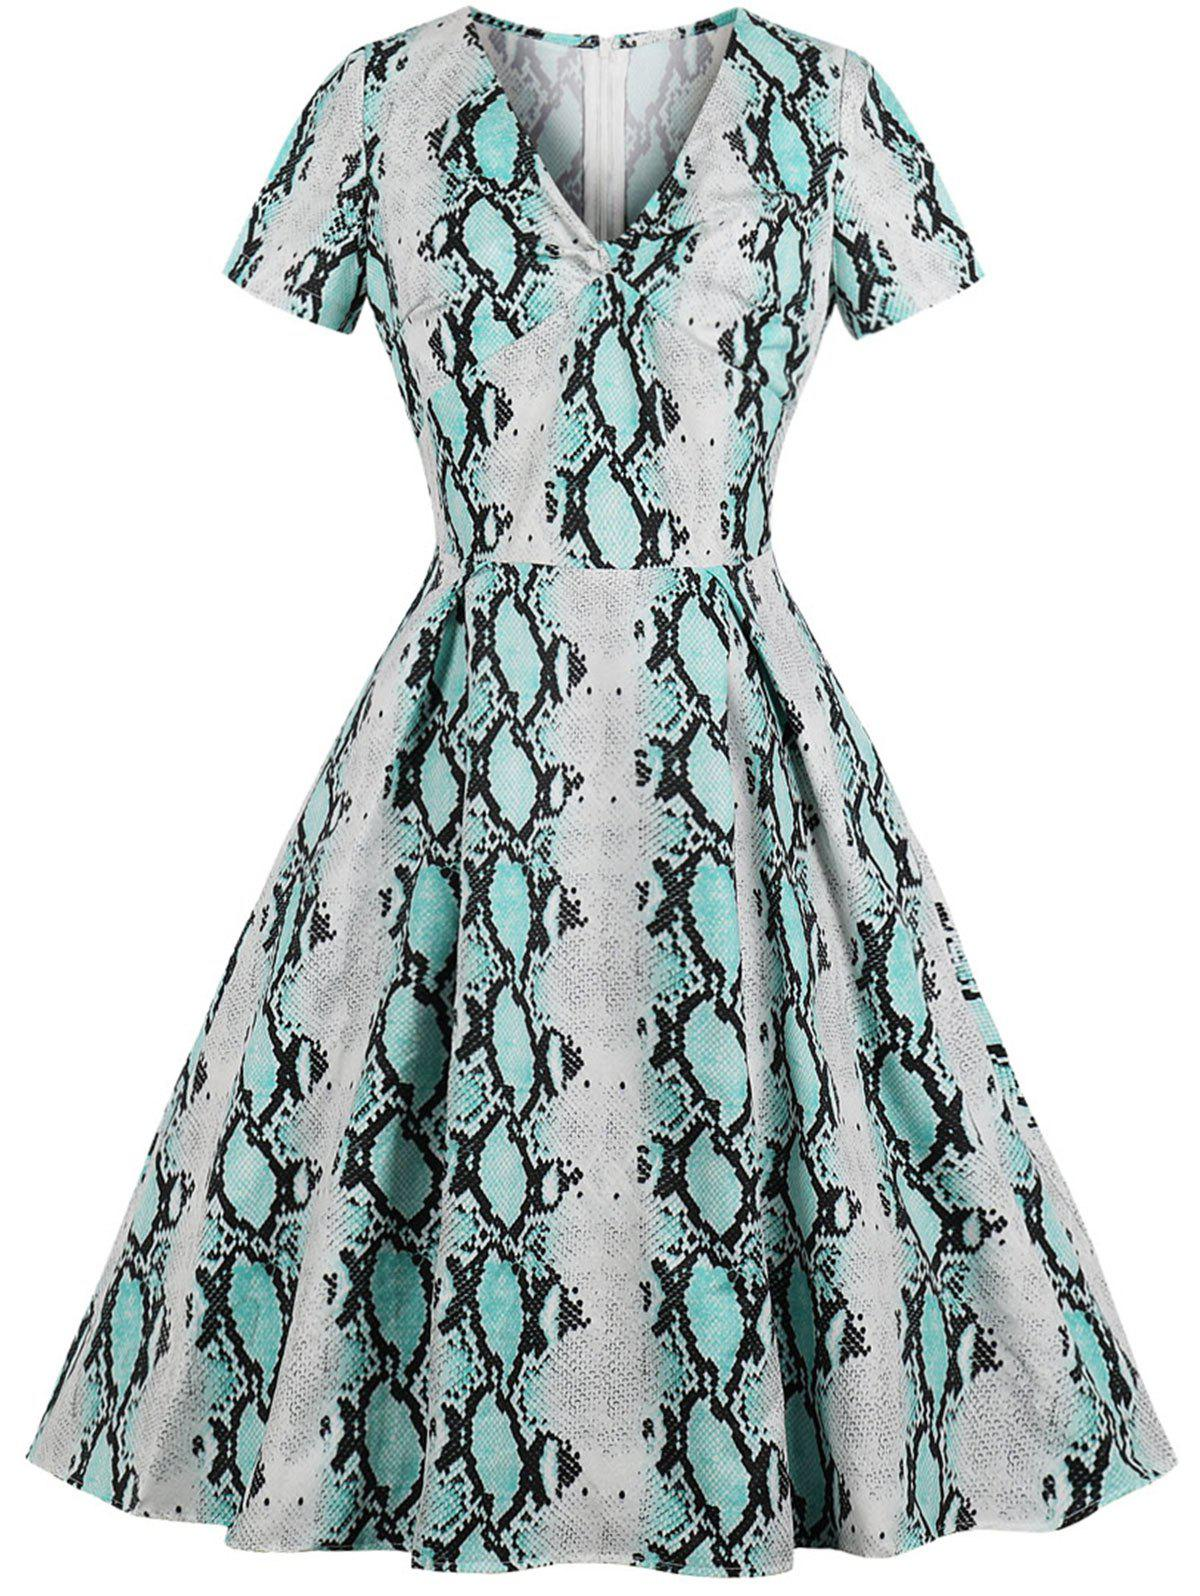 New Vintage Snakeskin Print Fit and Flare Dress